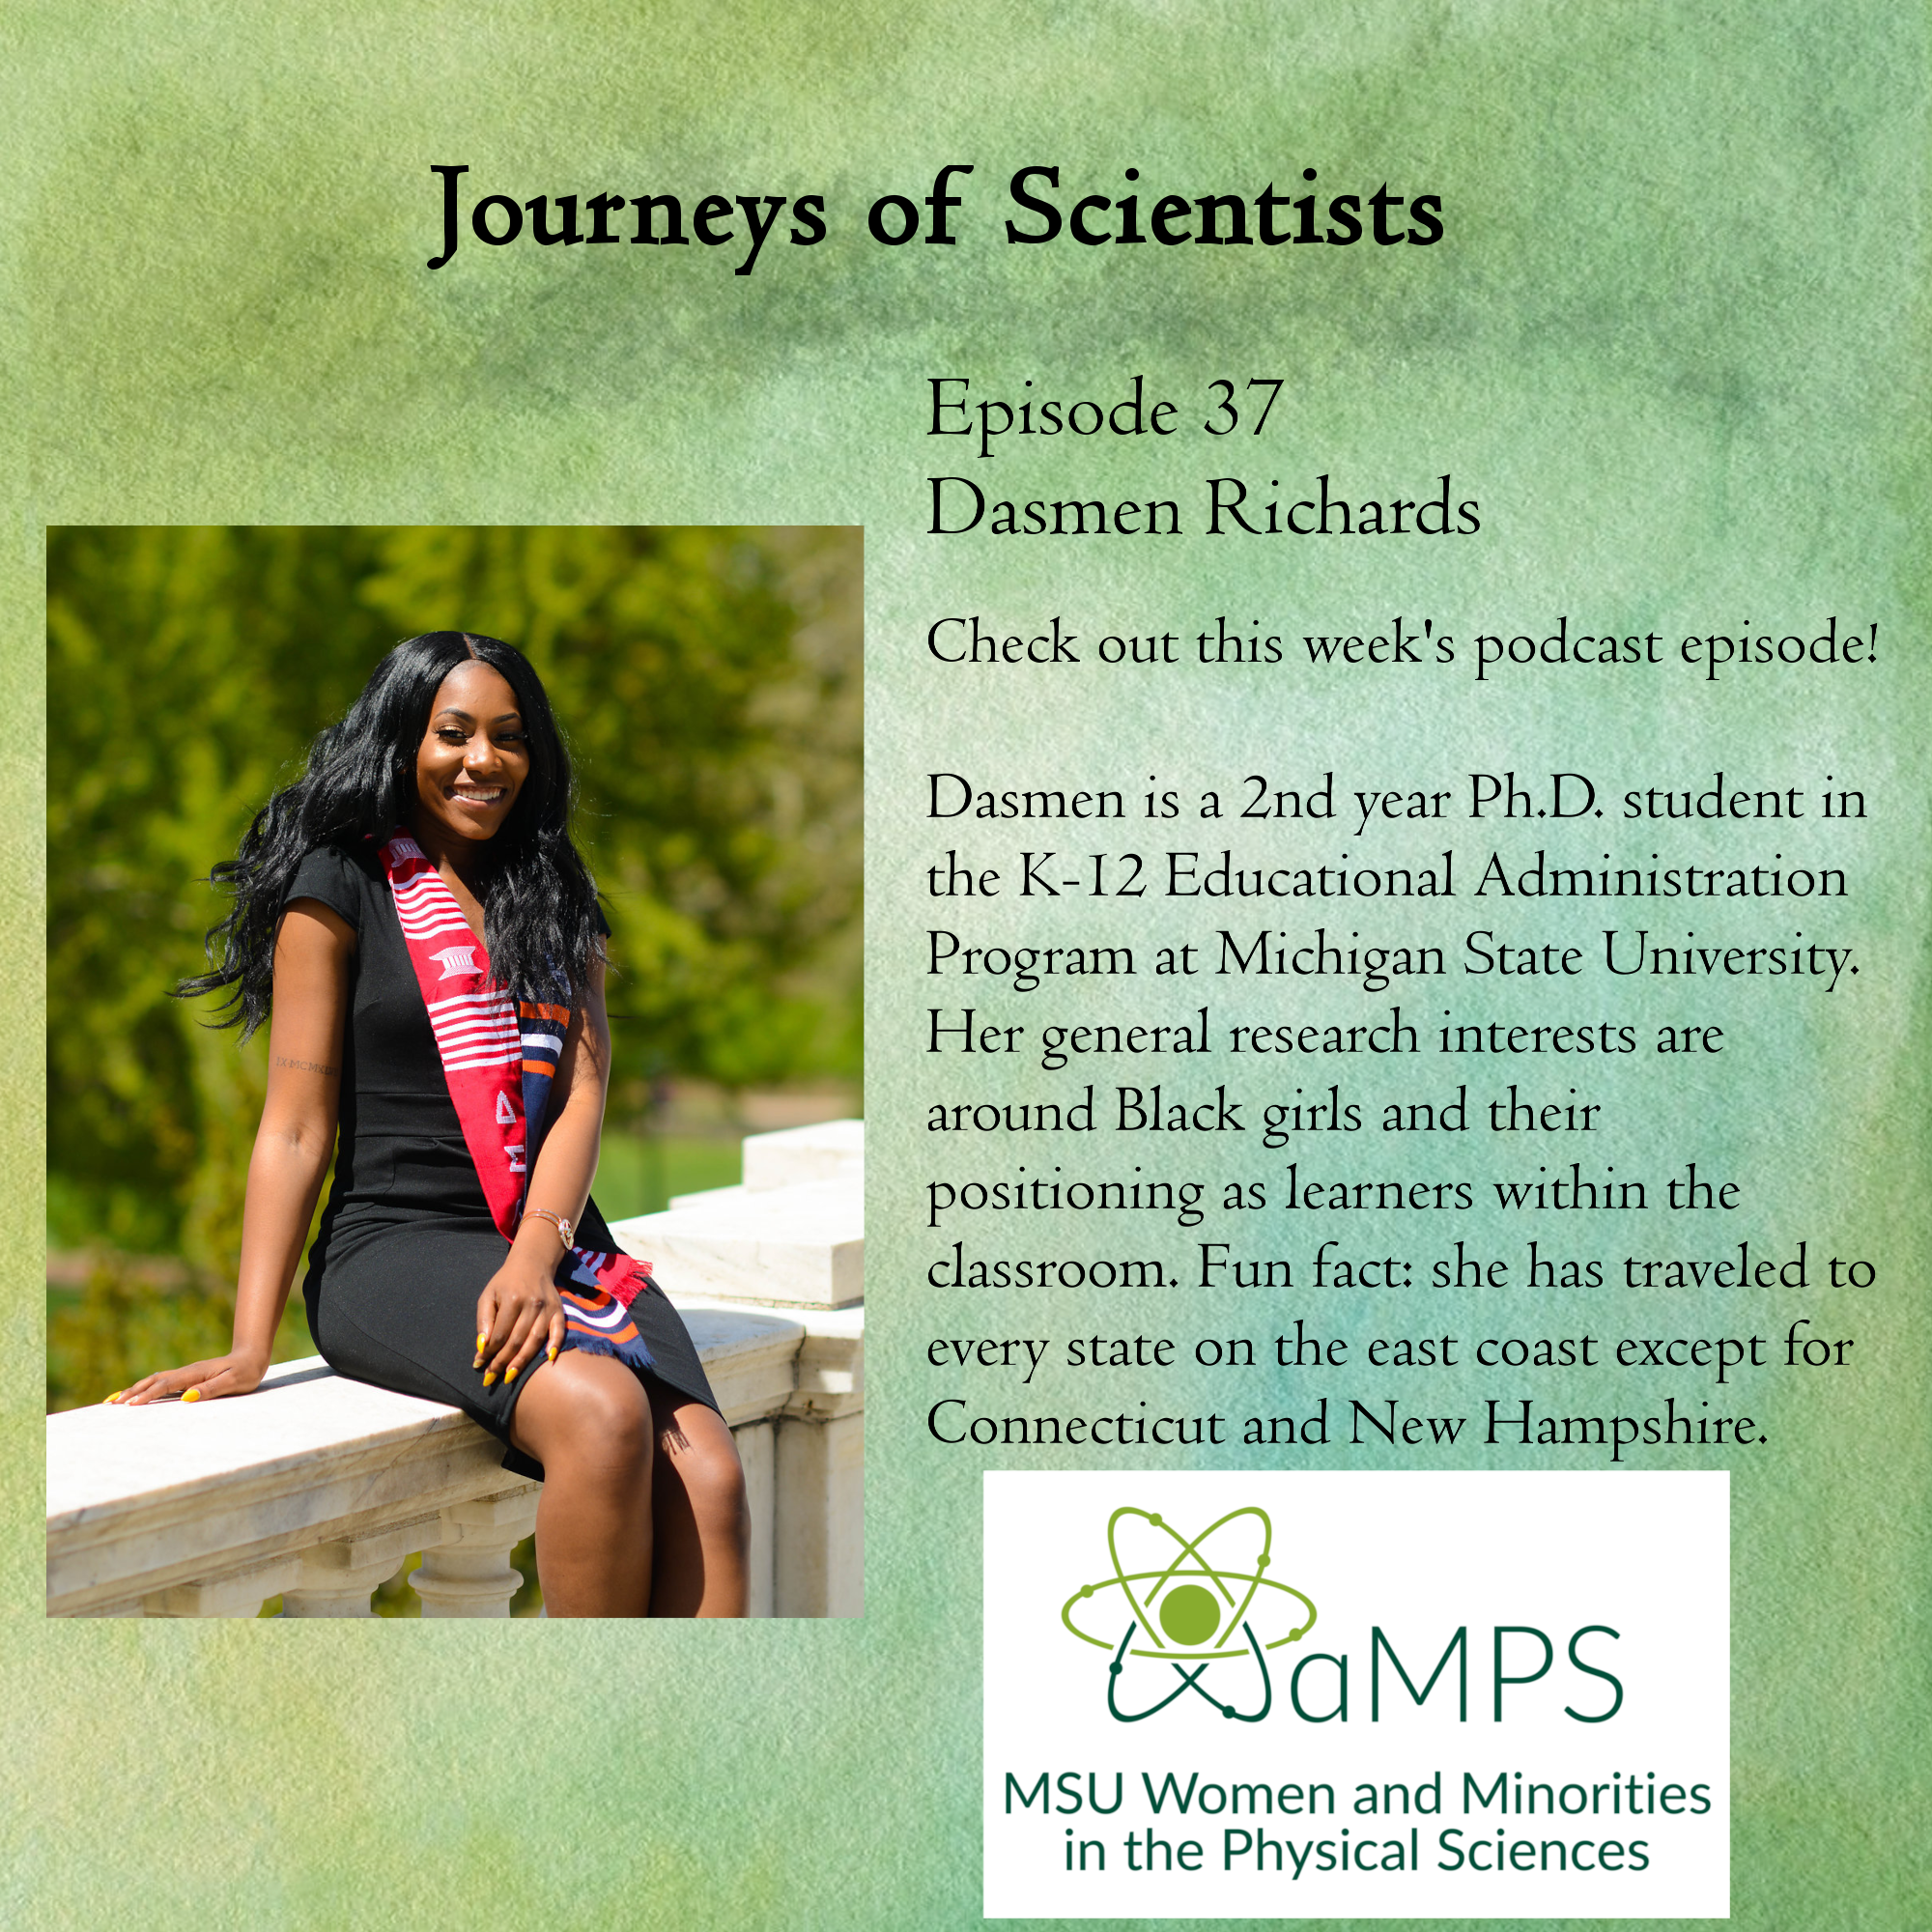 Dasmen Richards is a 2nd year Ph.D. student in the K-12 Educational Administration Program at Michigan State University. Her general research interests are around Black girls and their positioning as learners within the classroom. Fun fact: she has traveled to every state on the east coast except for Connecticut and New Hampshire.